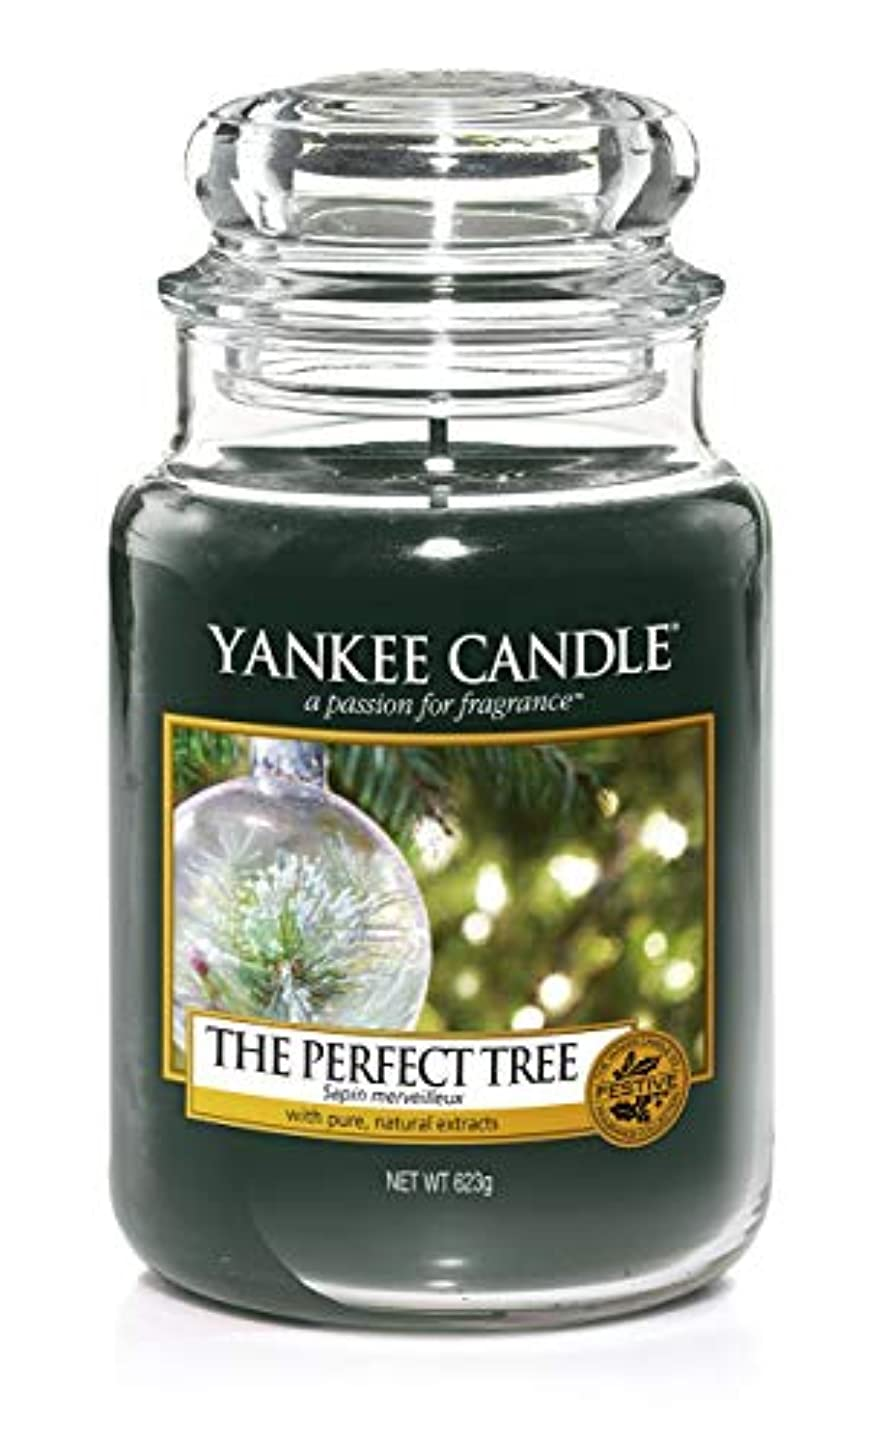 削減ピル科学者Yankee Candle The PerfectツリーLarge Jar 22oz